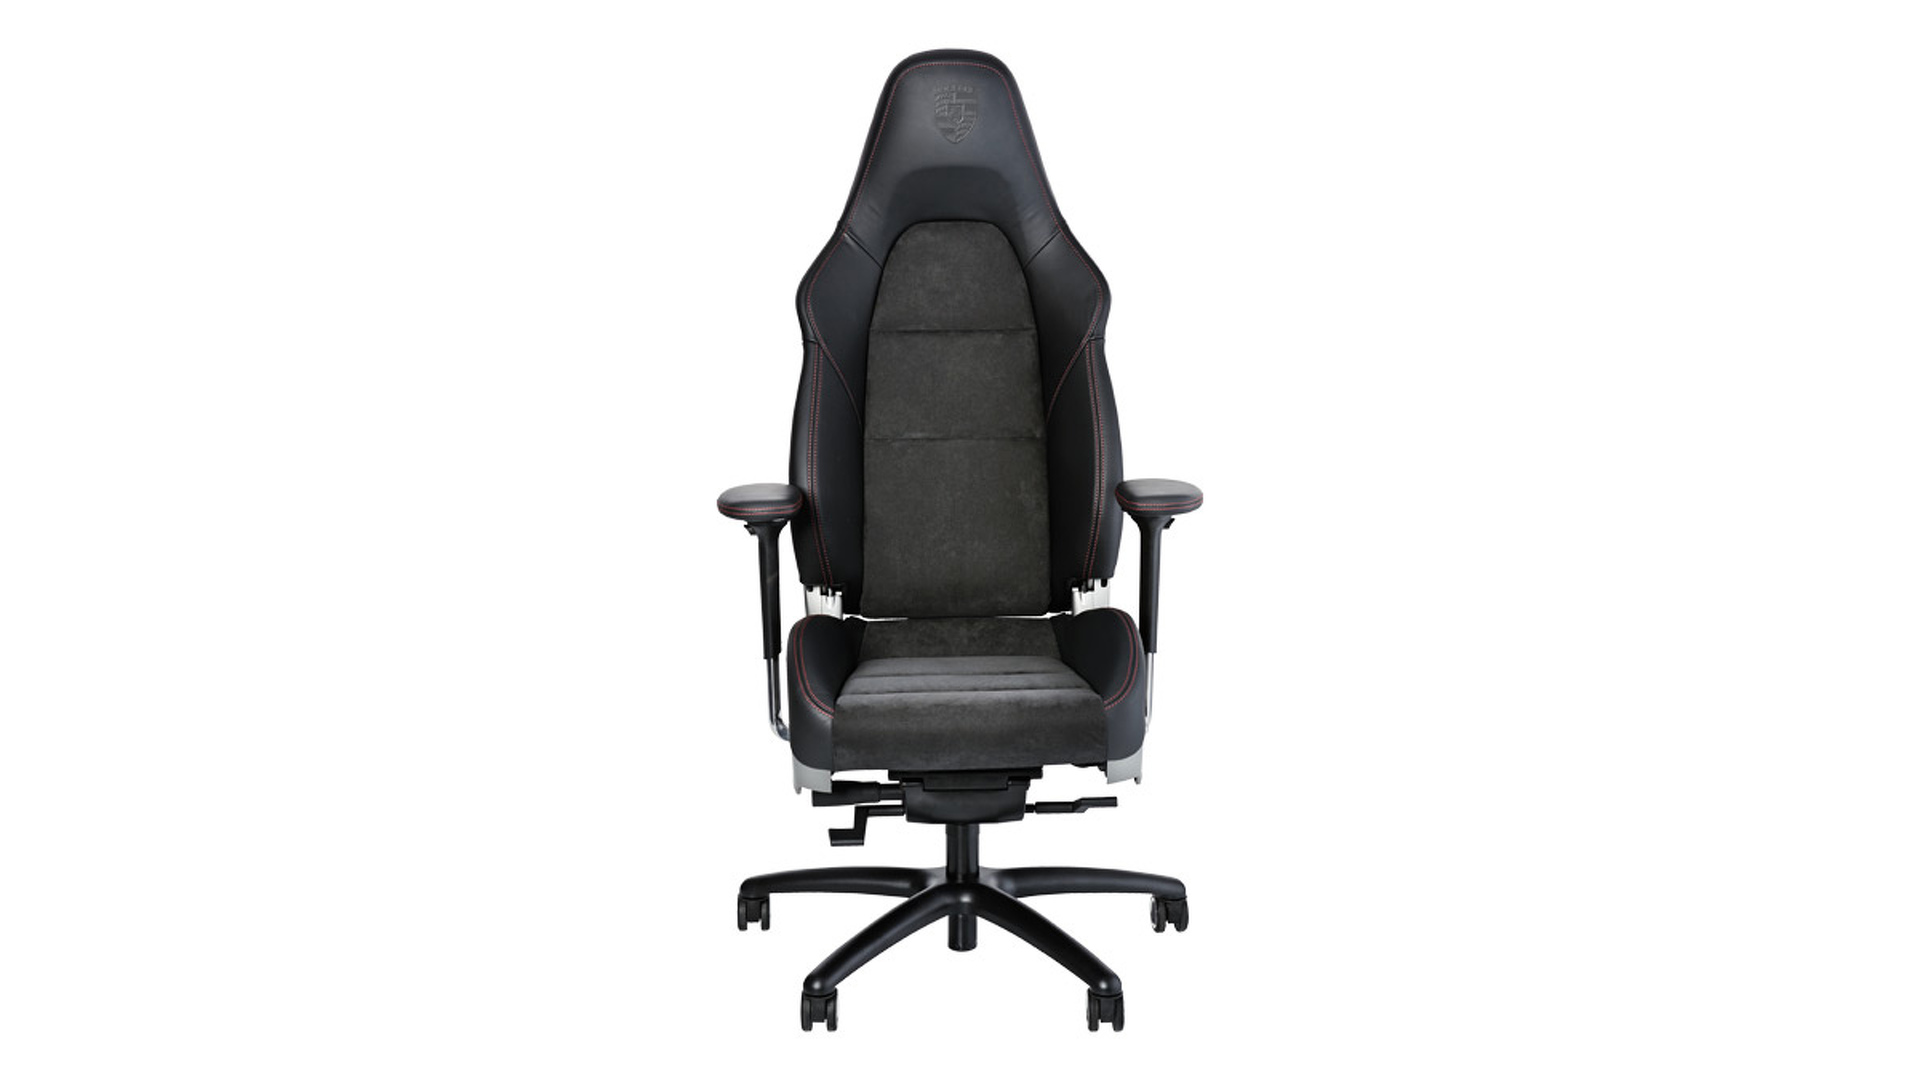 Would you spend $6,570 on Porsche office chair?